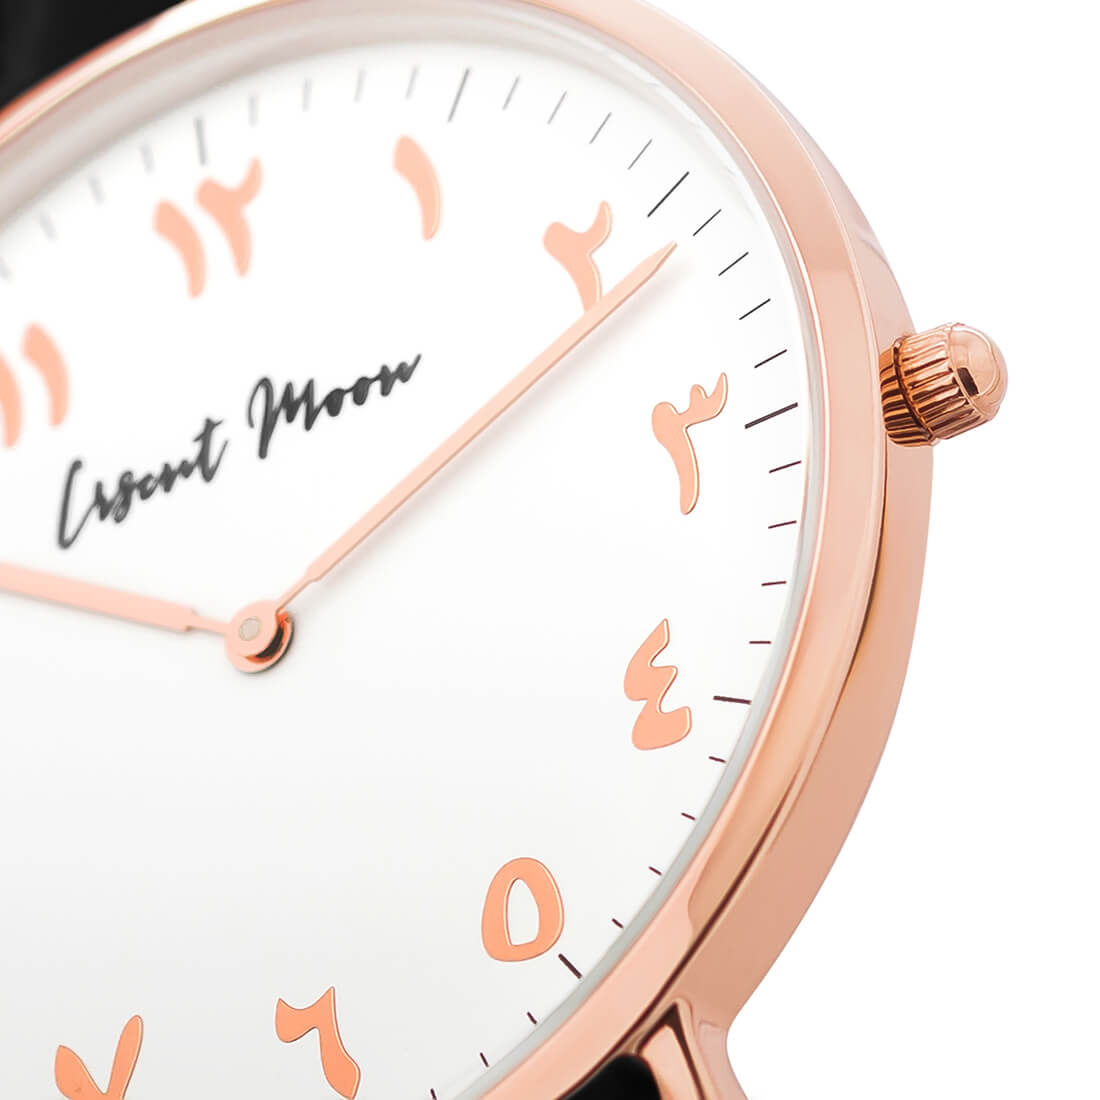 Arabic Numerals Watch with Black Leather Strap and Rose Gold Case by Crscnt Moon